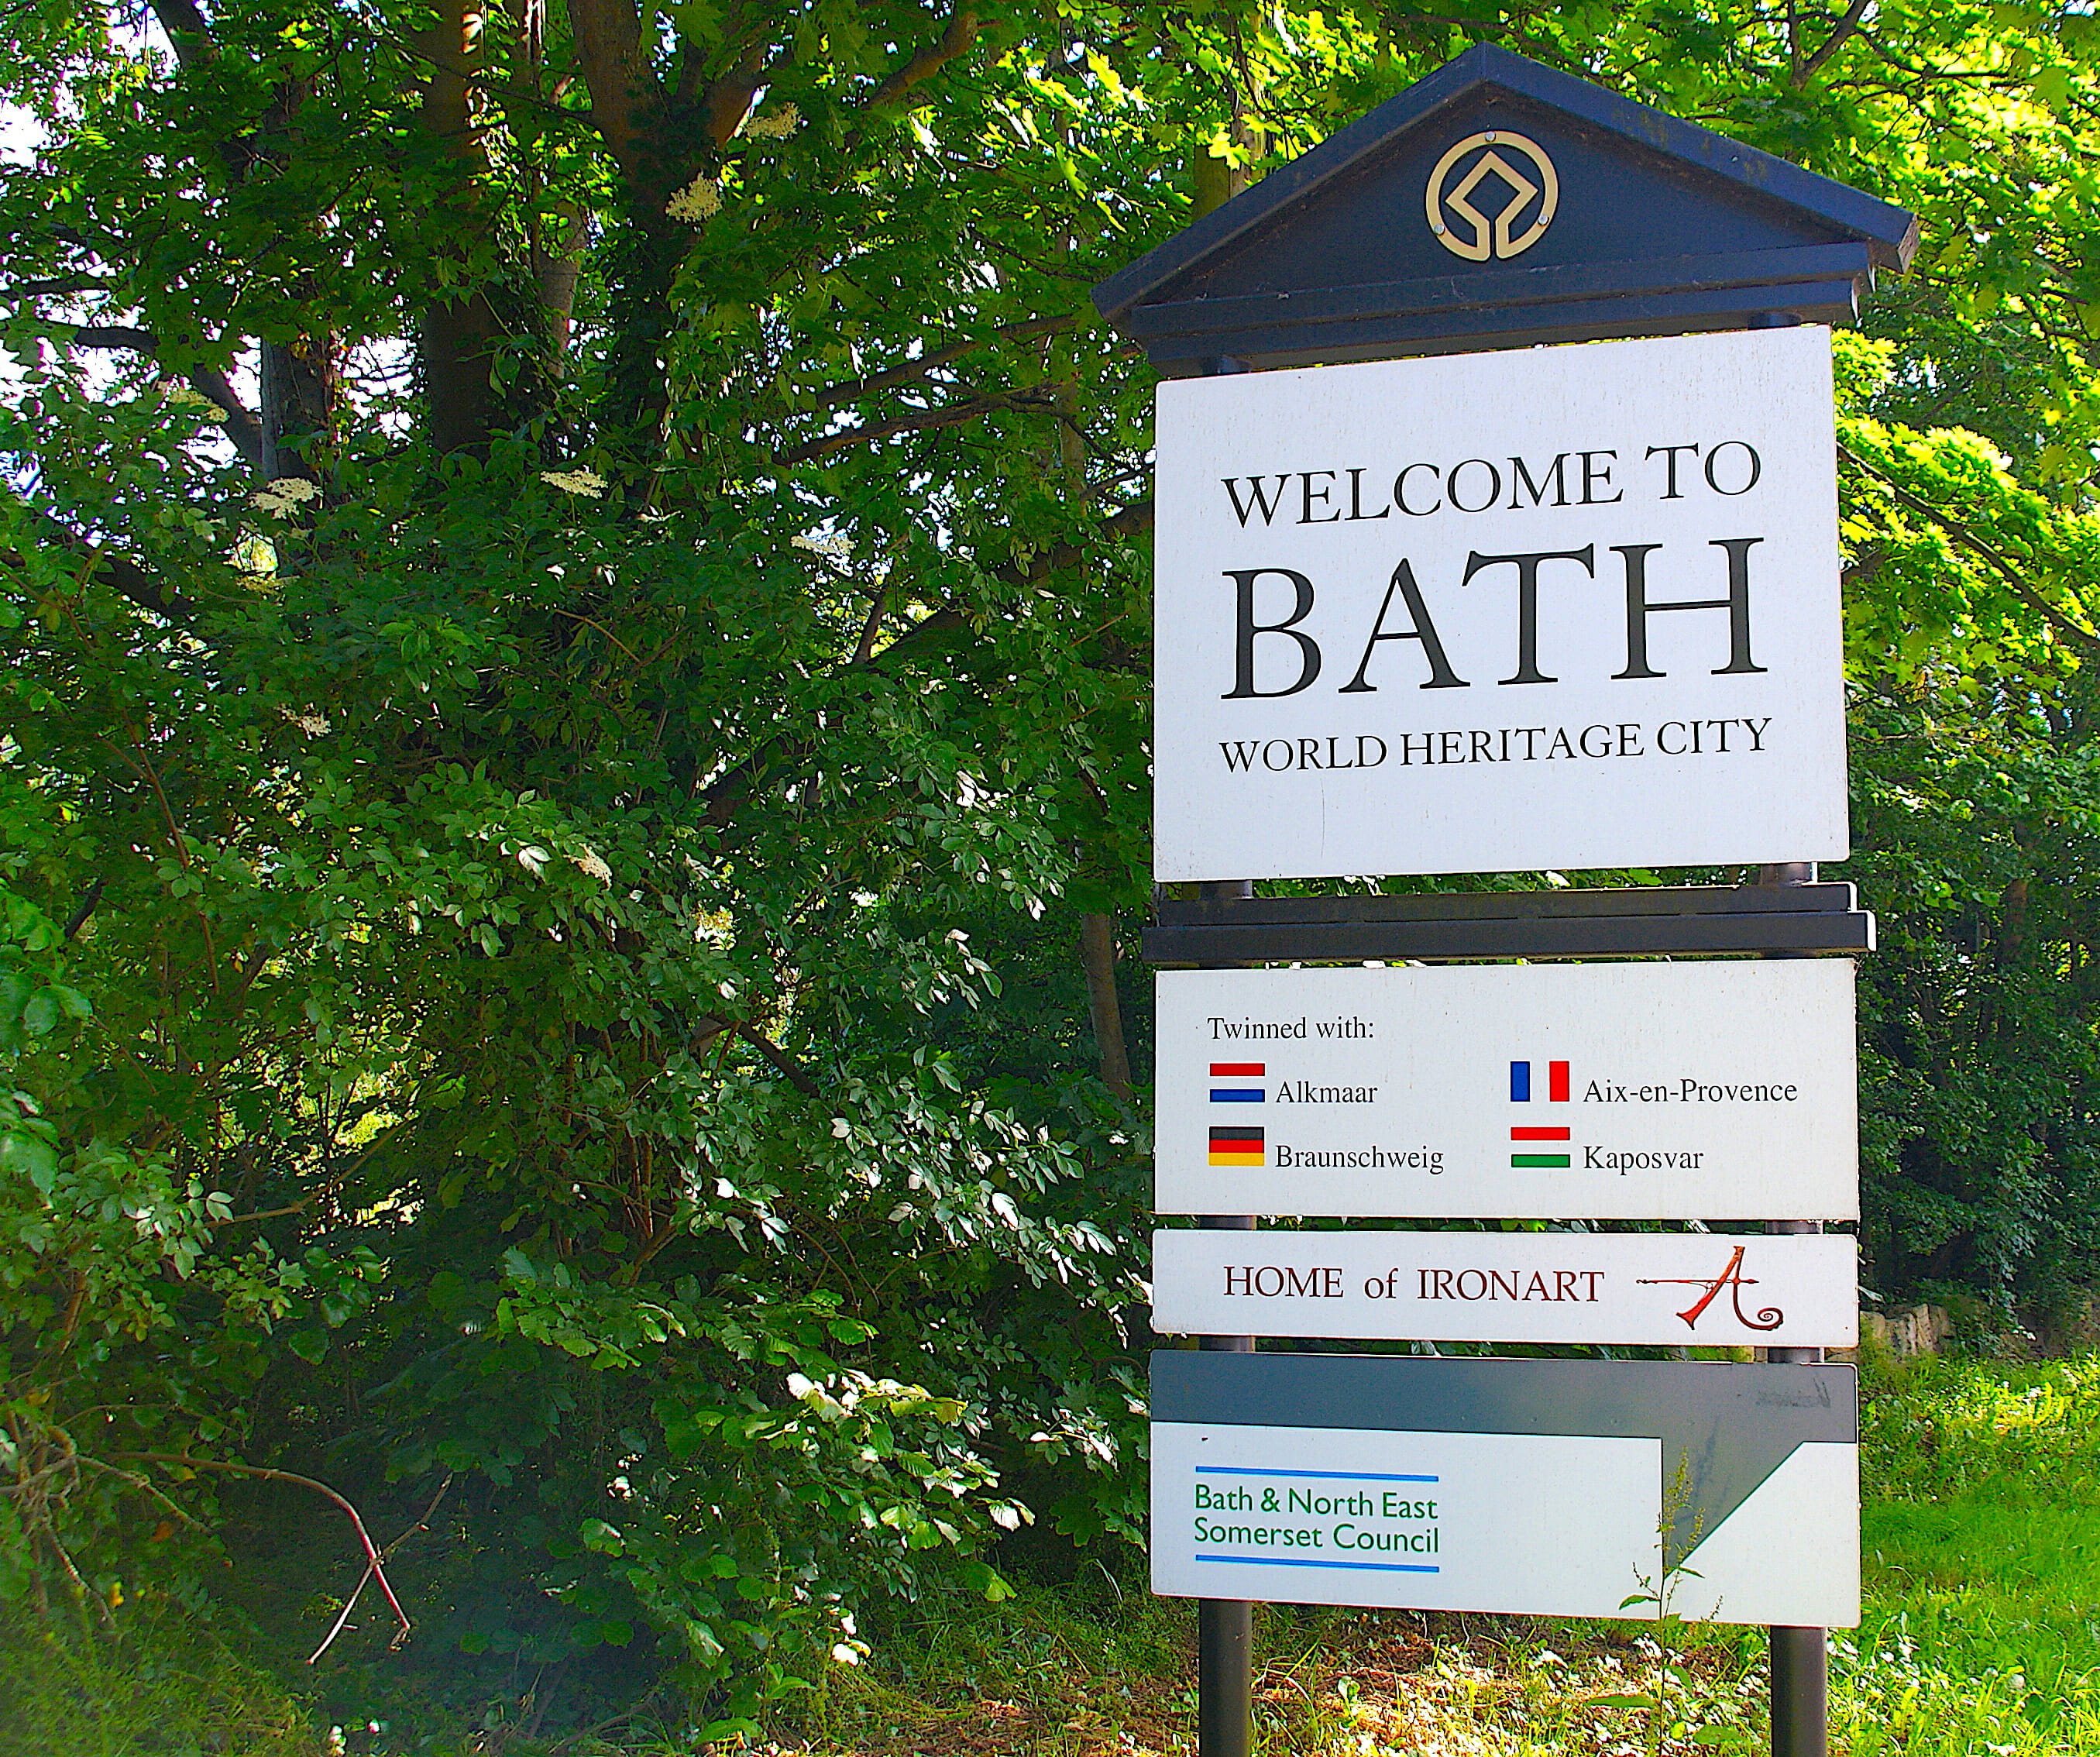 Welcome To Bath - World Heritage City